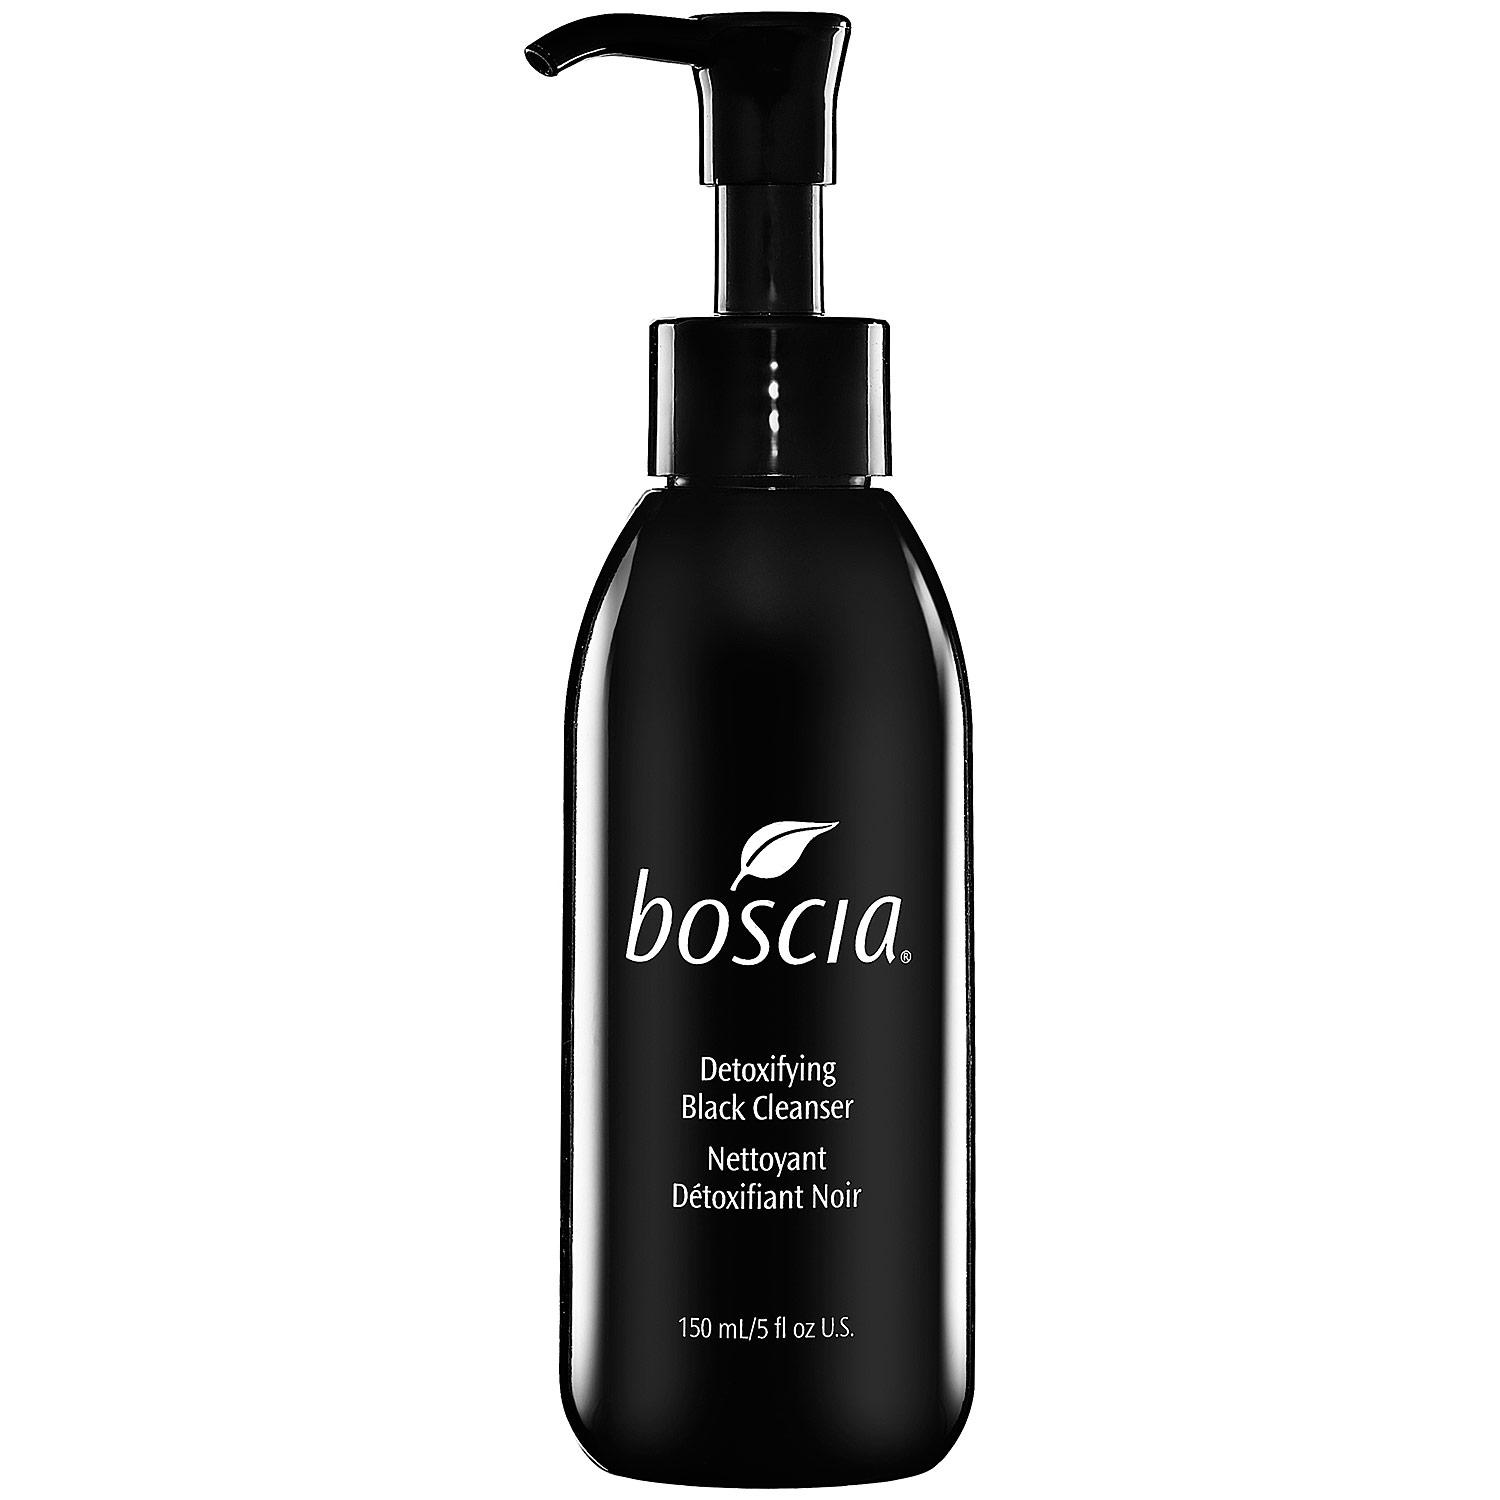 Detoxifying Black Cleanser